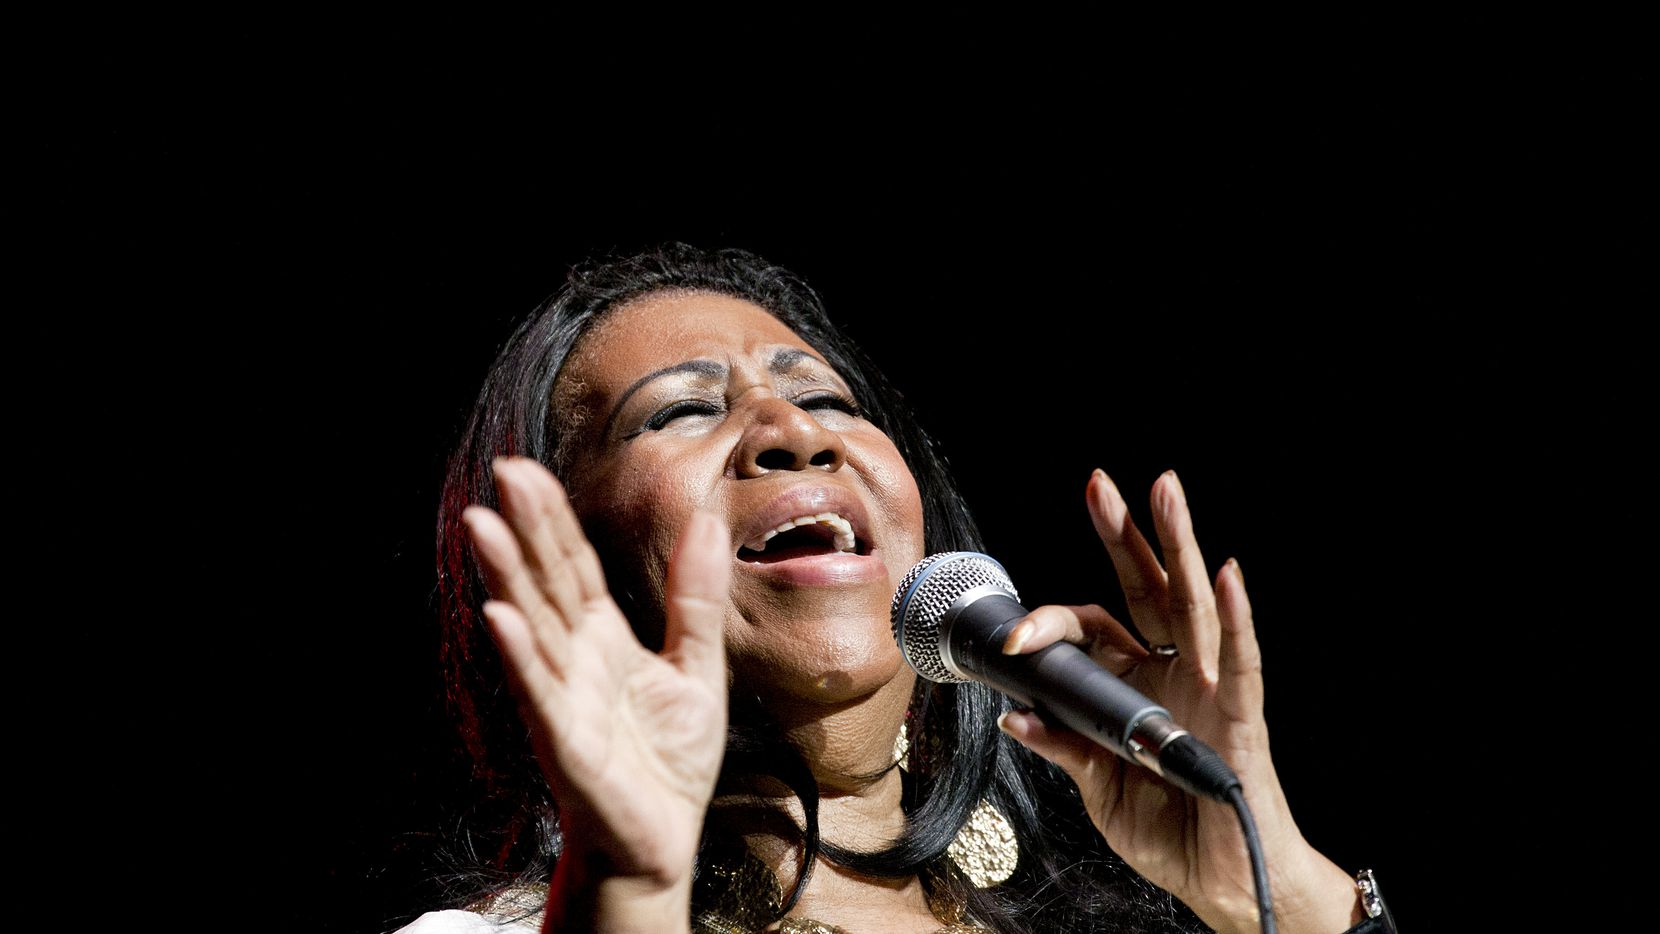 Aretha Franklin performs at the Jones Beach Theater in Wantagh, N.Y., July 27, 2011.